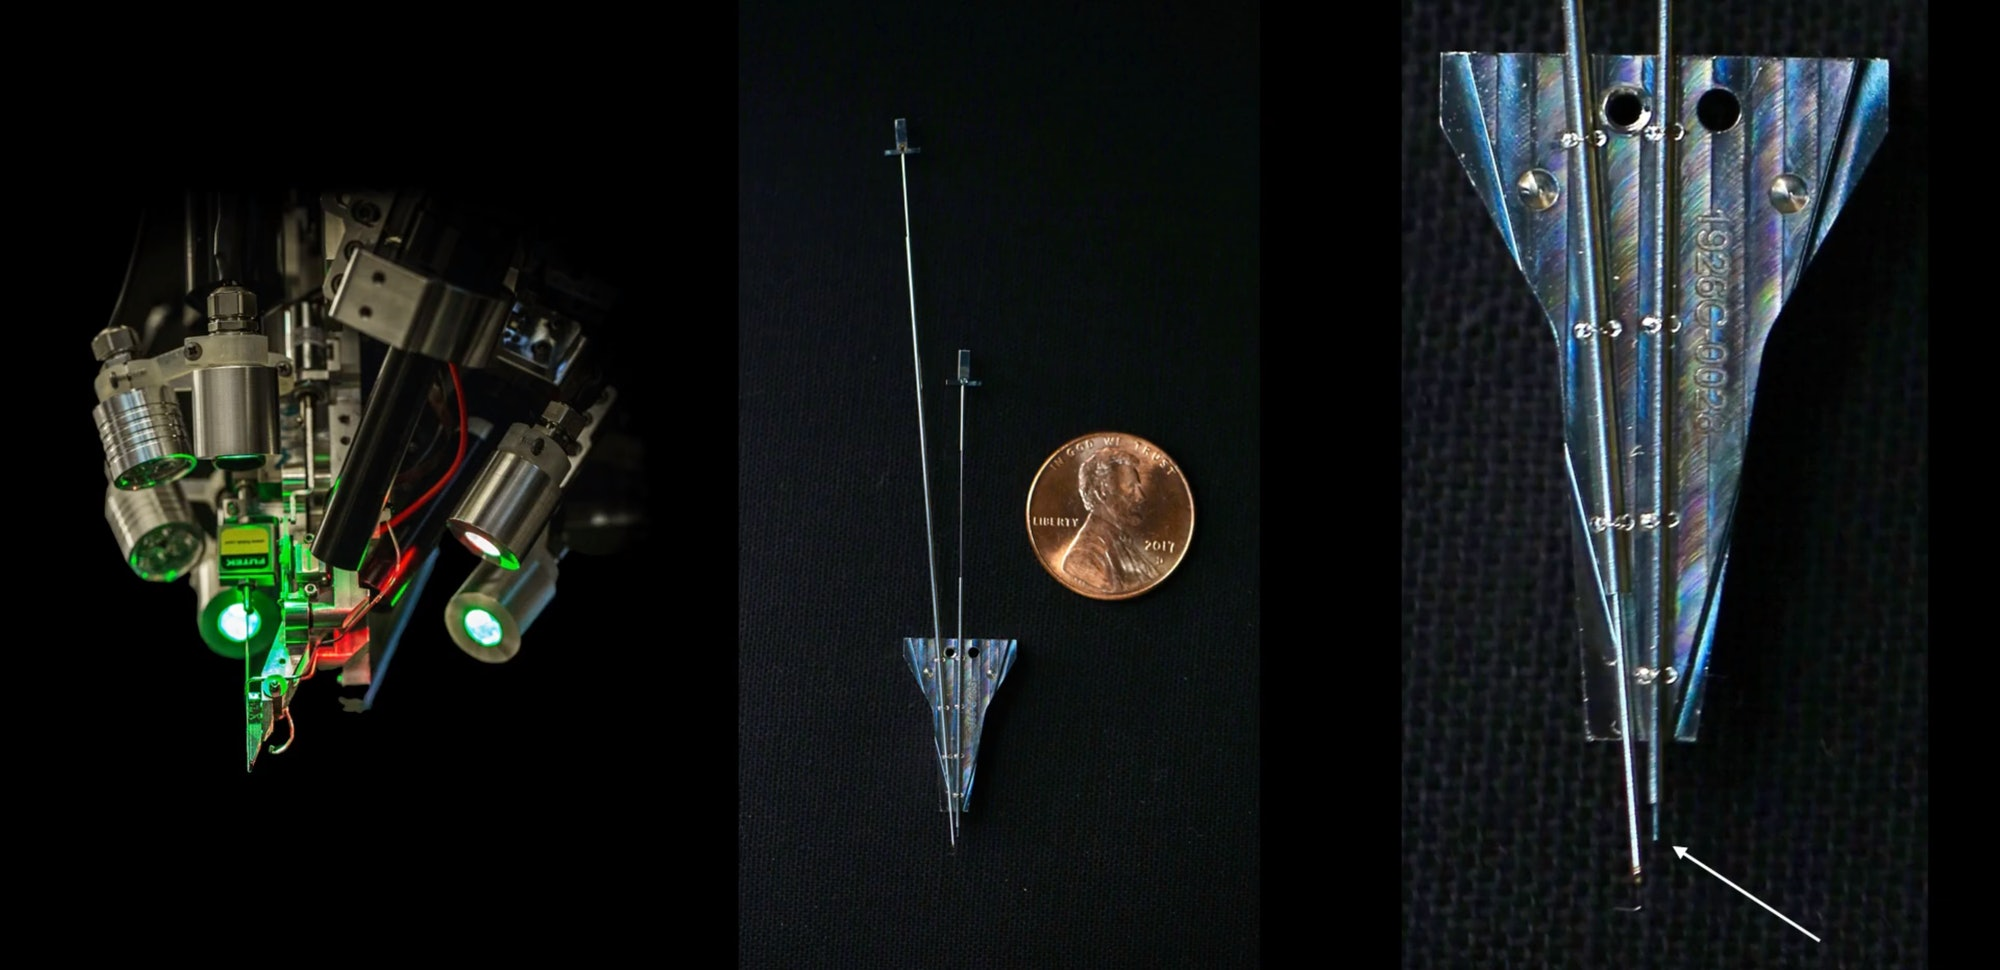 On the far right next to the arrow, the robot needle used to thread the probes.